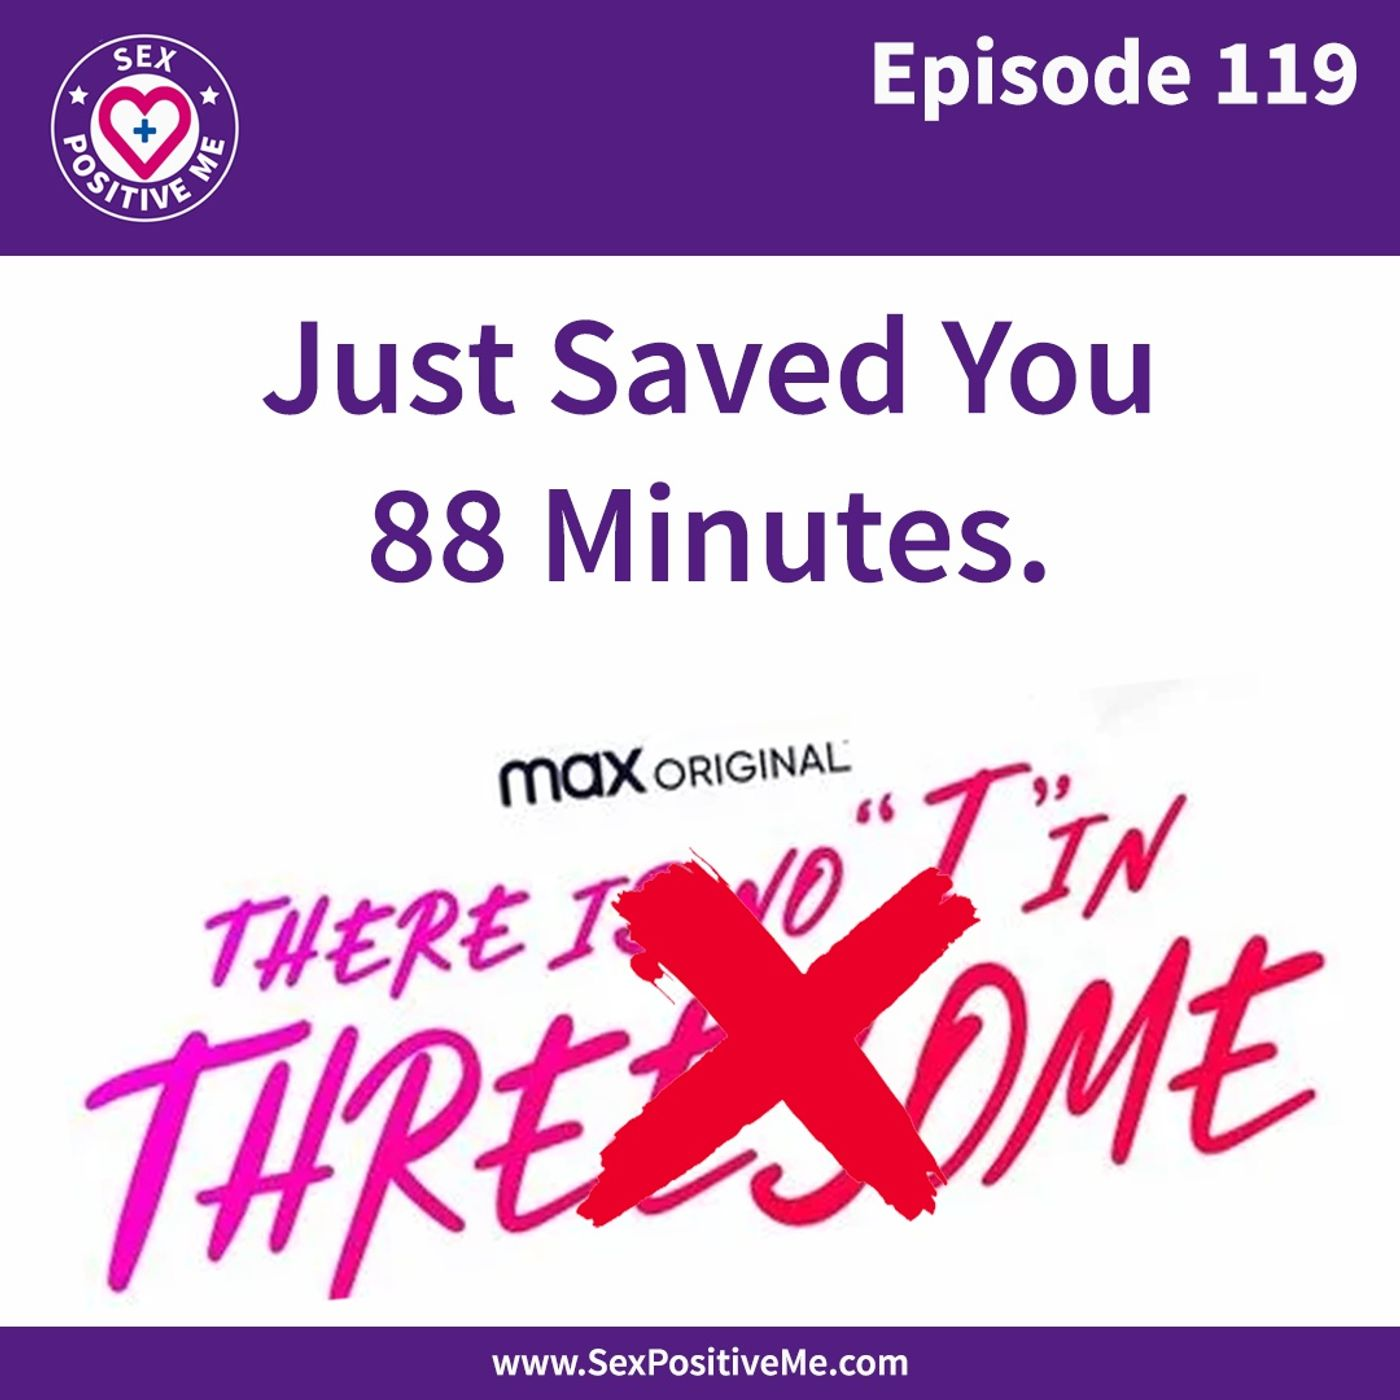 Sex Positive Me - E119 Just Saved You 88 Minutes